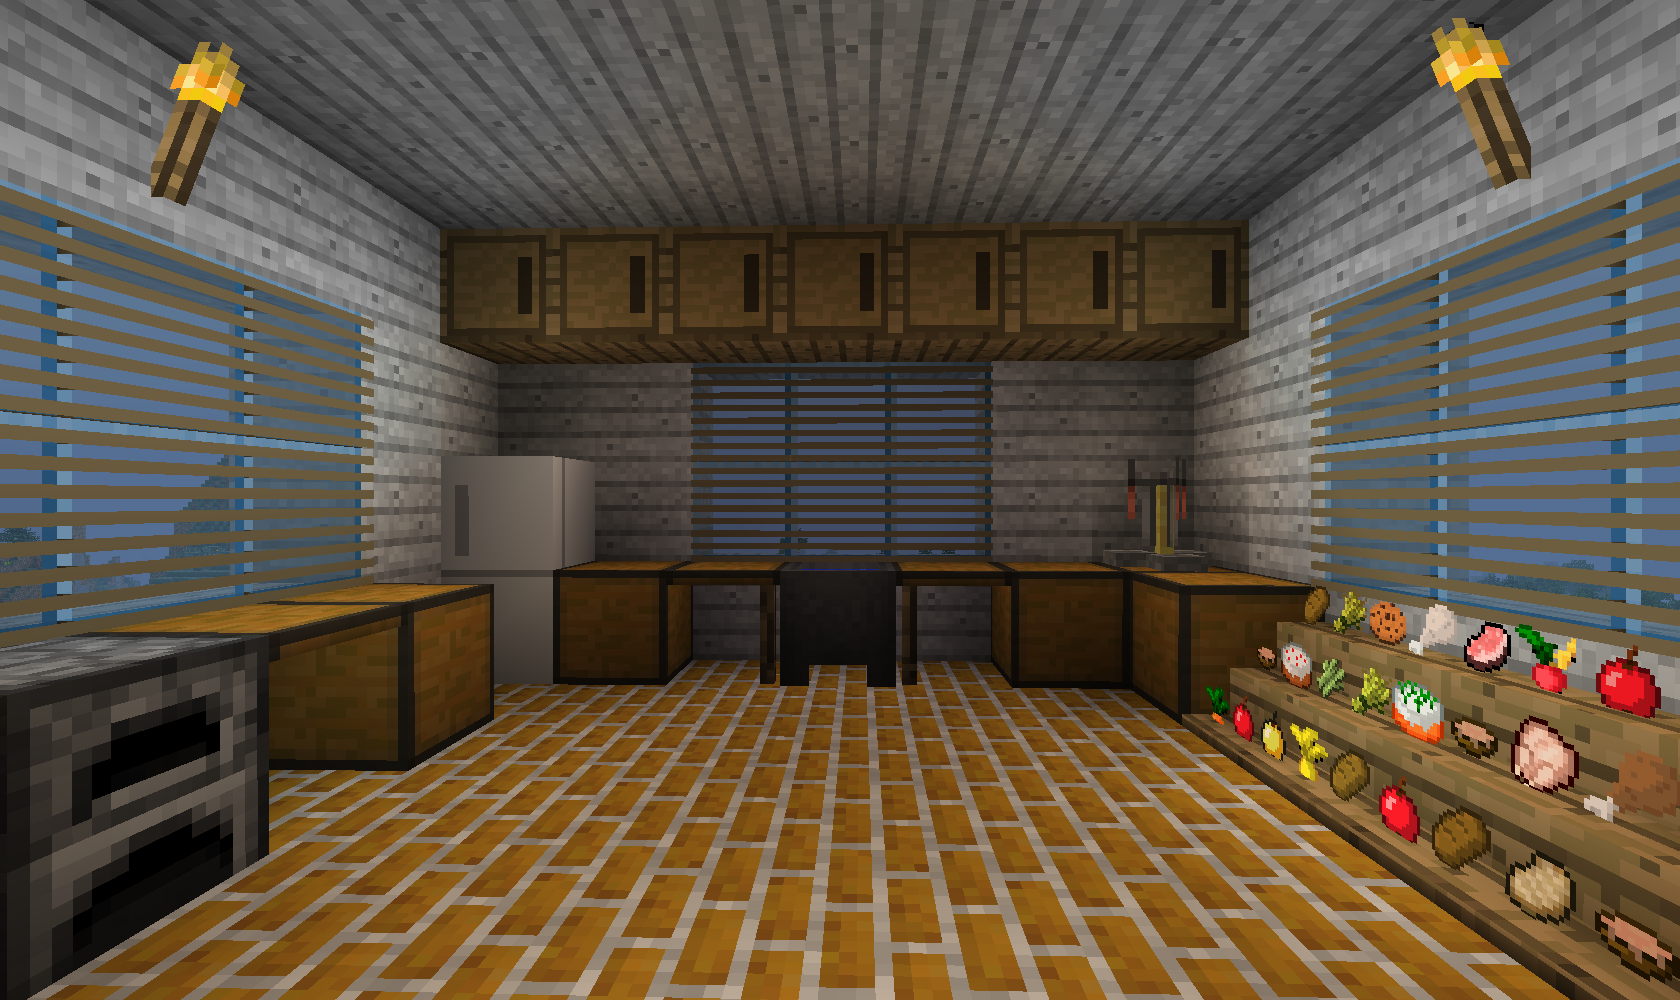 Kitchen Ideas In Minecraft minecraft kitchen only will use item frames for the food so they